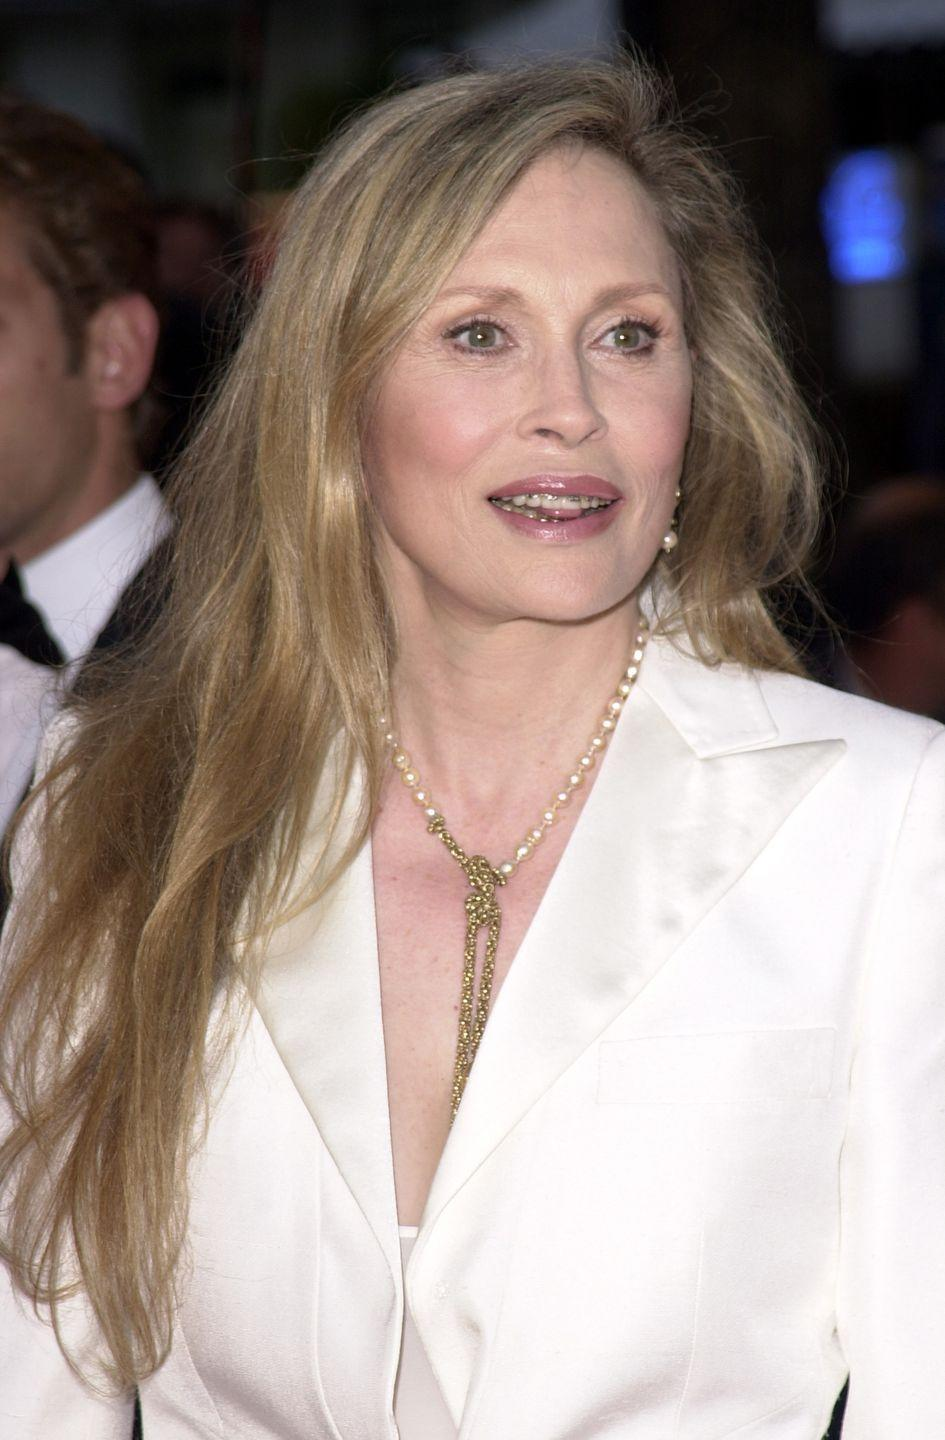 """<p>At 61, Faye Dunaway got braces to take care of her teeth. At the time, Tom Cruise had just gotten his, so Faye gave it a try. """"You just sort of let your teeth go for a while. But it's time to have something done,"""" <a href=""""http://www.dailymail.co.uk/tvshowbiz/article-416022/Faye-Dunaway-flashes-new-pearly-whites.html"""" rel=""""nofollow noopener"""" target=""""_blank"""" data-ylk=""""slk:she said"""" class=""""link rapid-noclick-resp"""">she said</a>. </p>"""